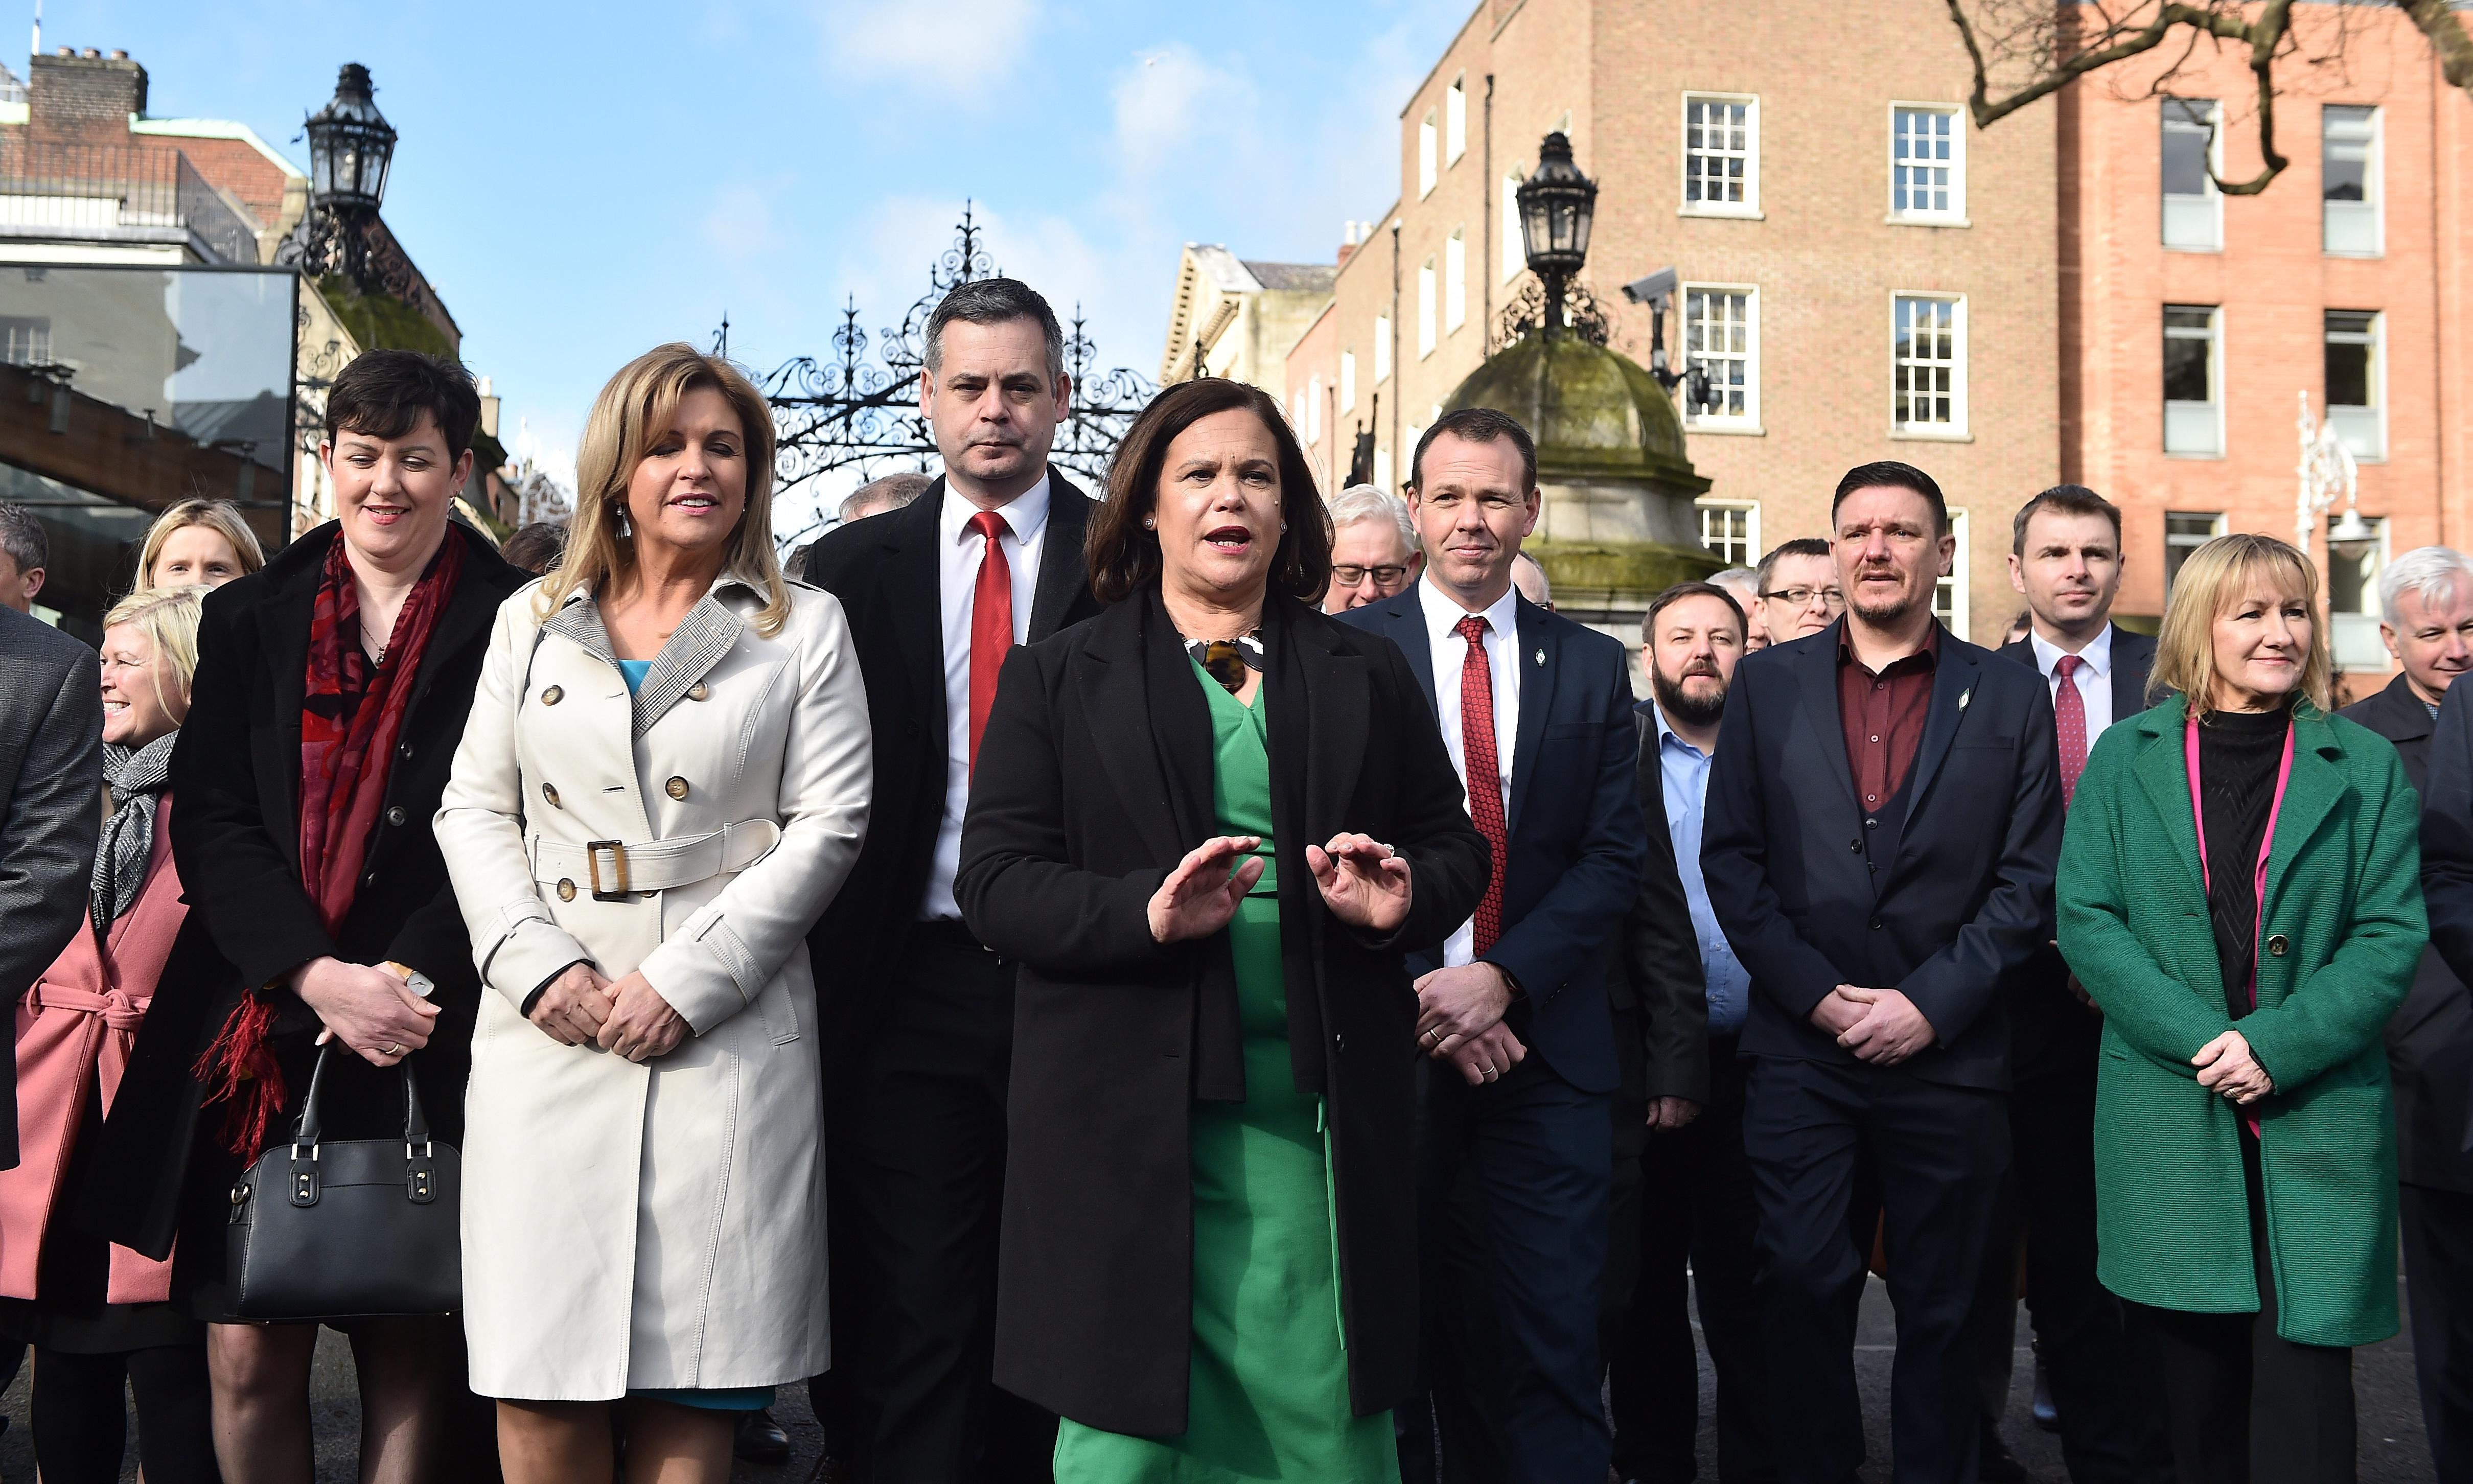 Hysteria over Sinn Féin entering government is about power, not the past